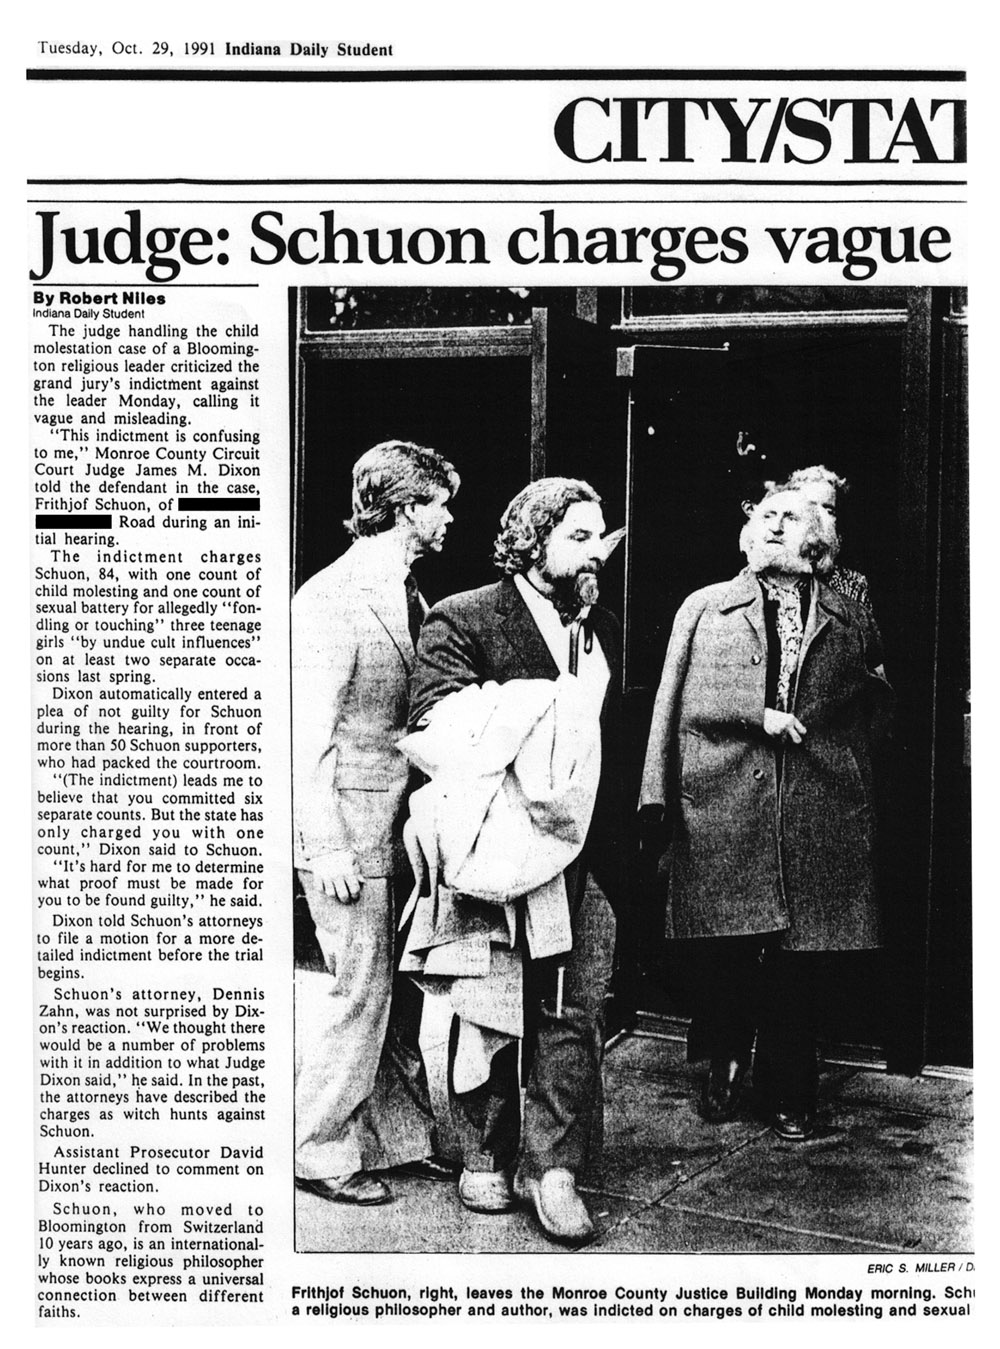 image of the newspaper article 'Judge: Schuon charges vague'